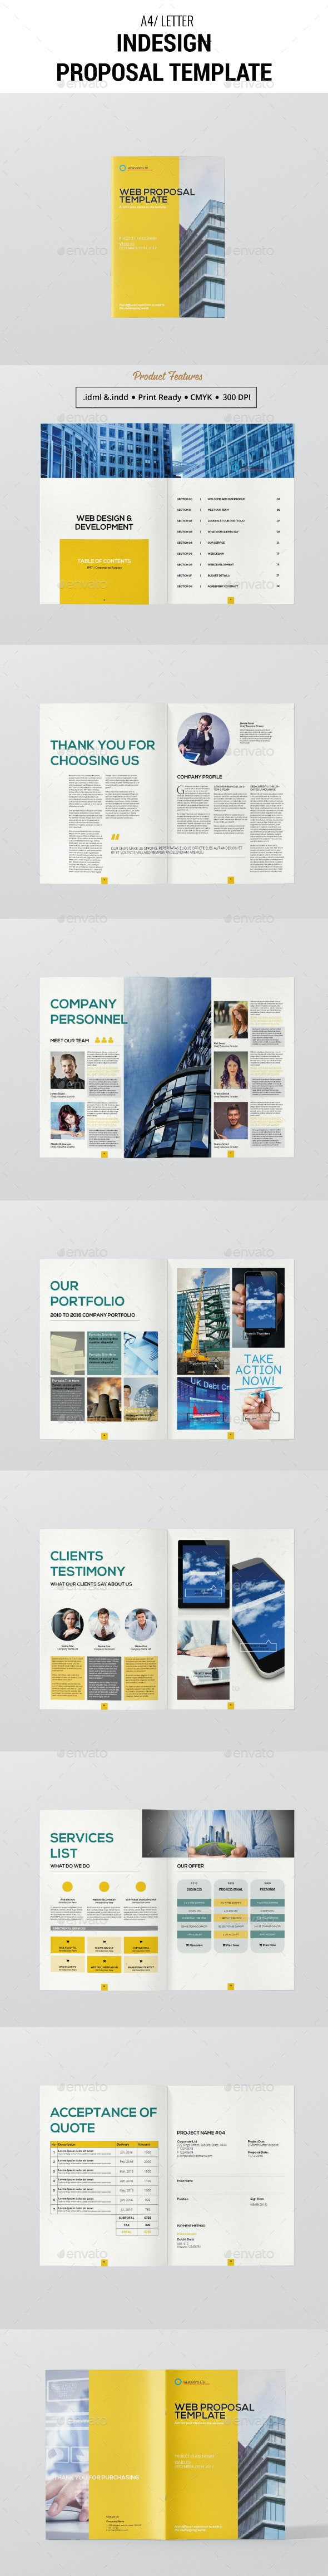 Indesign Proposal Template - Proposals & Invoices Stationery